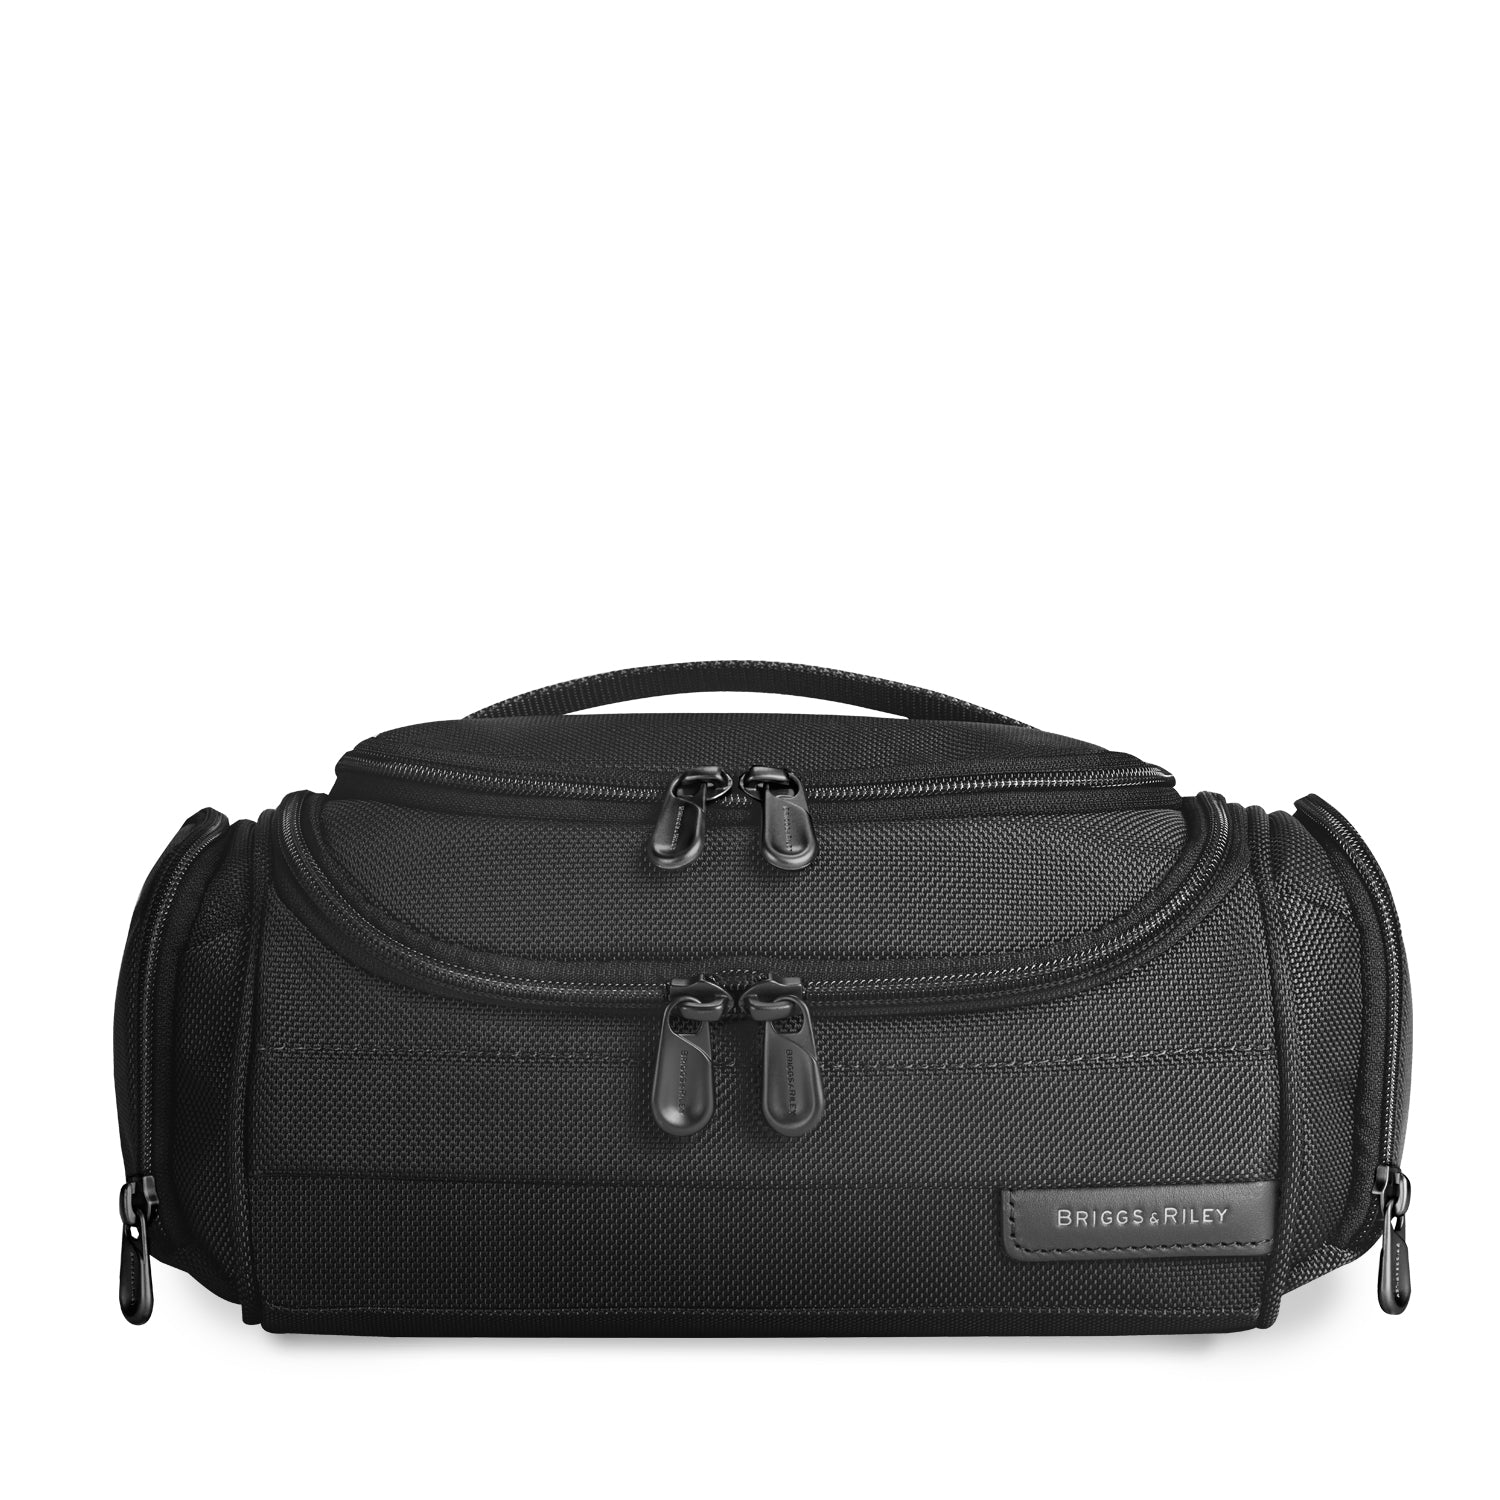 baseline-executive-toiletry-kit-114